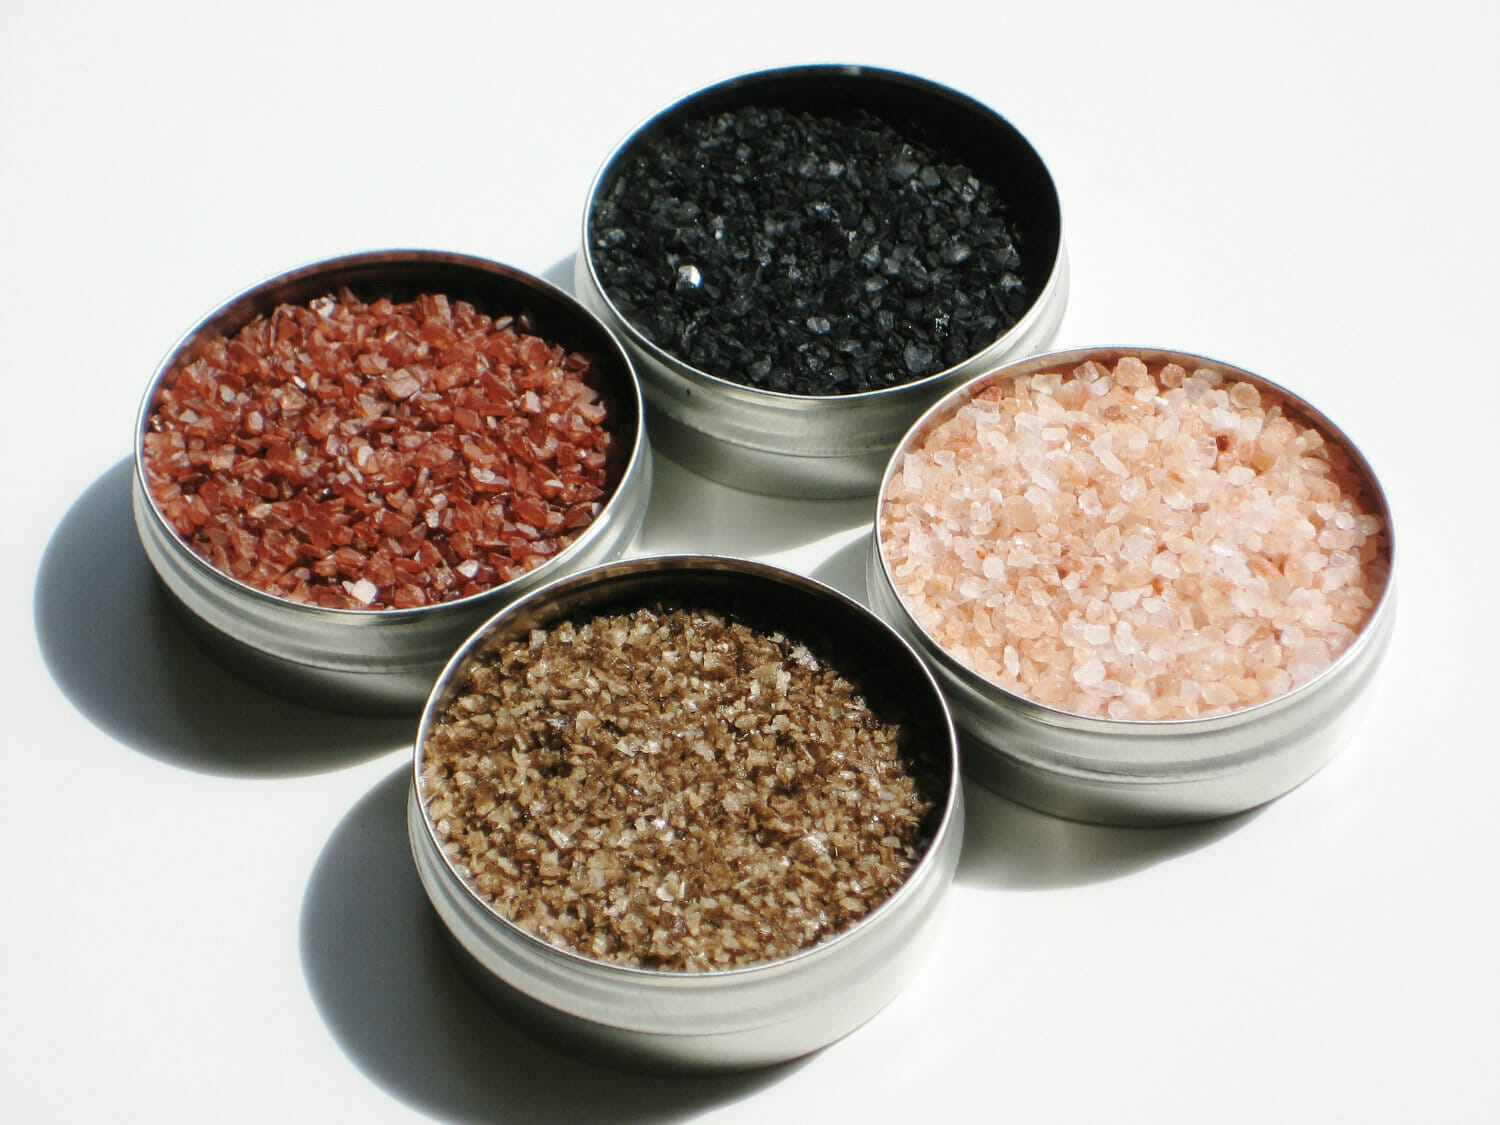 Gourmet spices, sauces, or salts make great gifts for foodies.